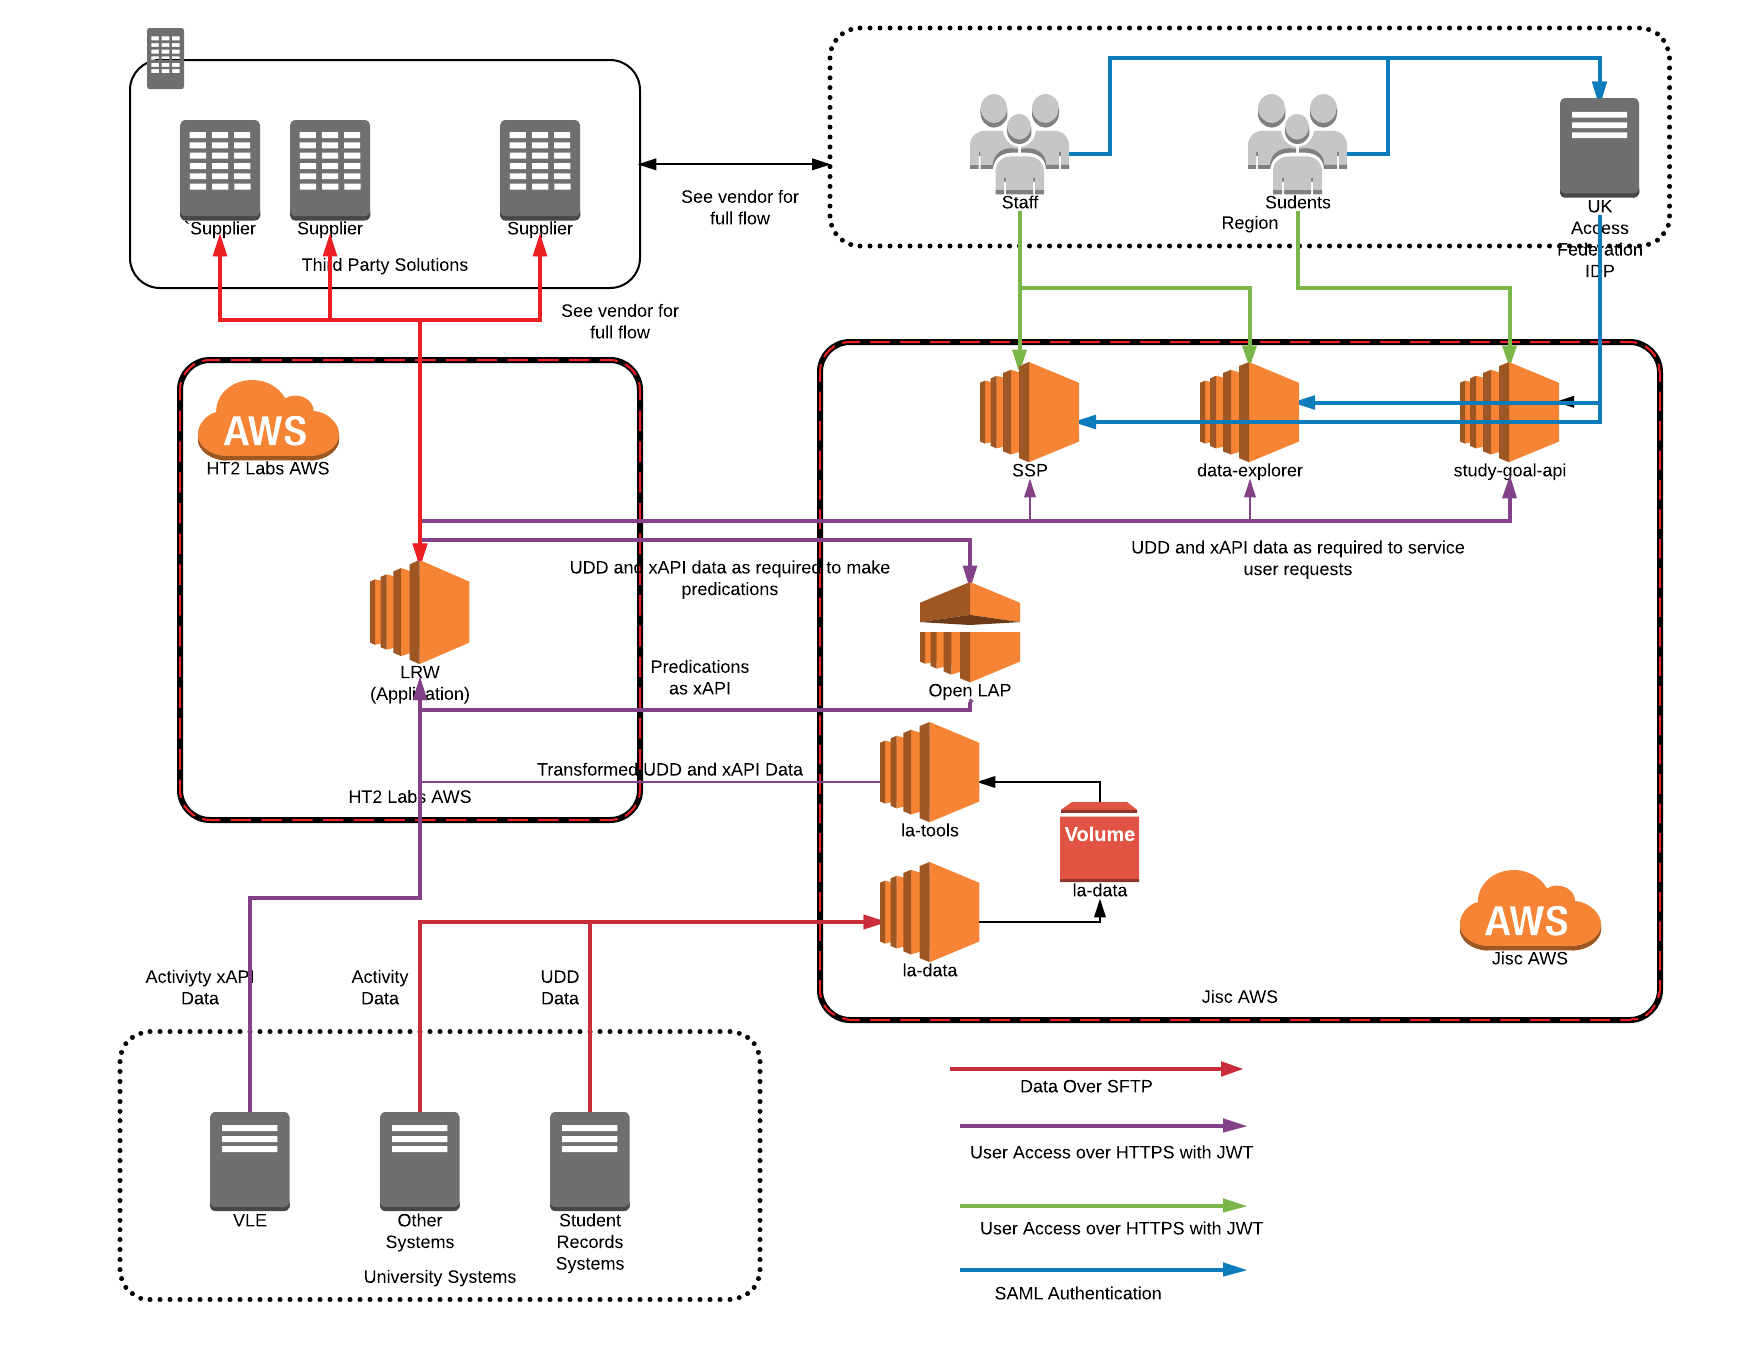 Learning Analytics Service Data Flows